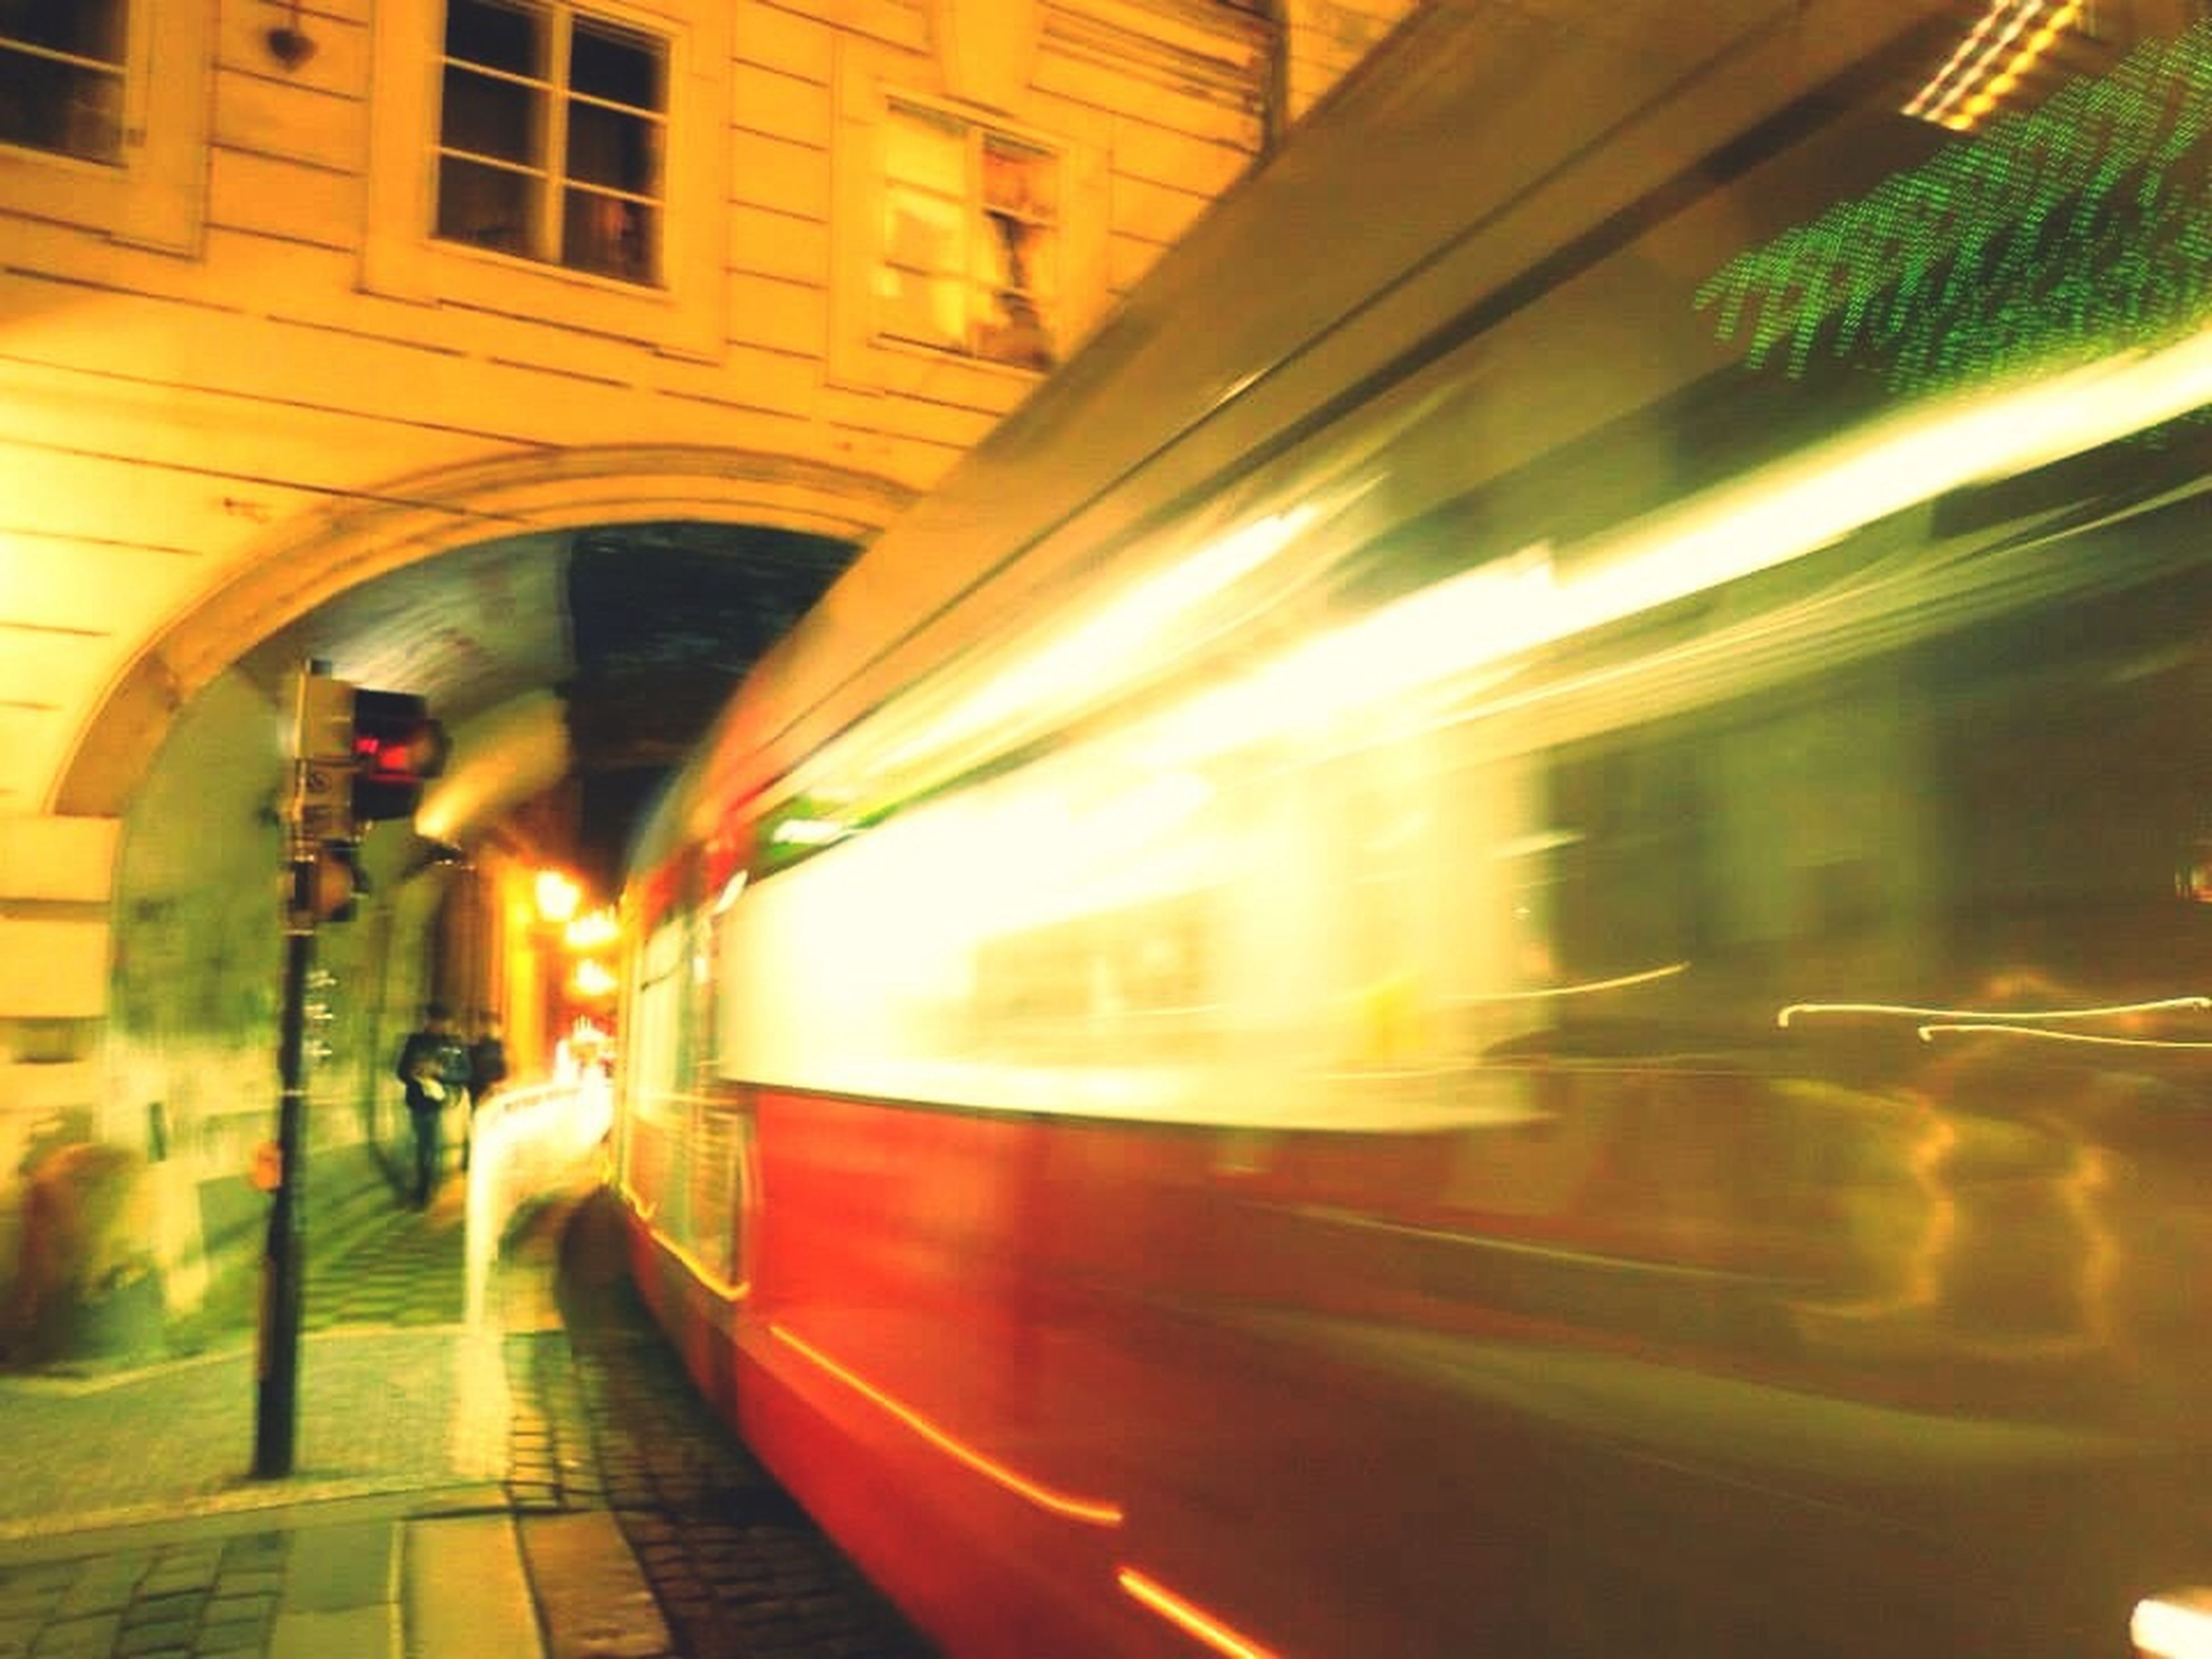 transportation, illuminated, built structure, architecture, mode of transport, public transportation, motion, indoors, blurred motion, night, speed, railroad track, arch, travel, on the move, long exposure, railroad station, tunnel, rail transportation, the way forward